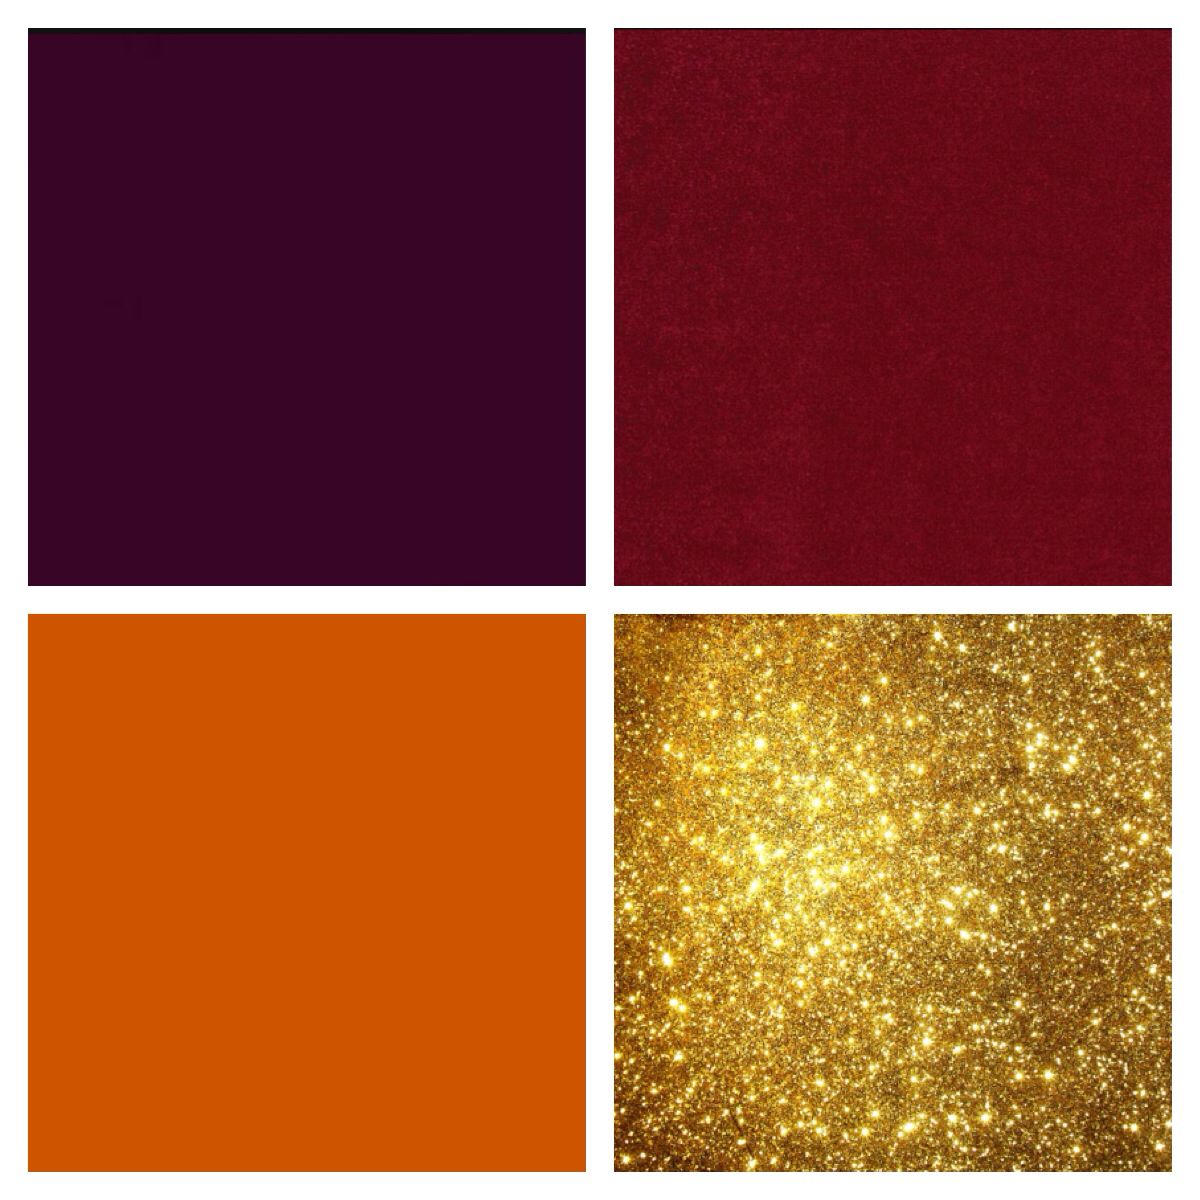 Eggplant cranberry burnt orange and gold color scheme Navy purple color